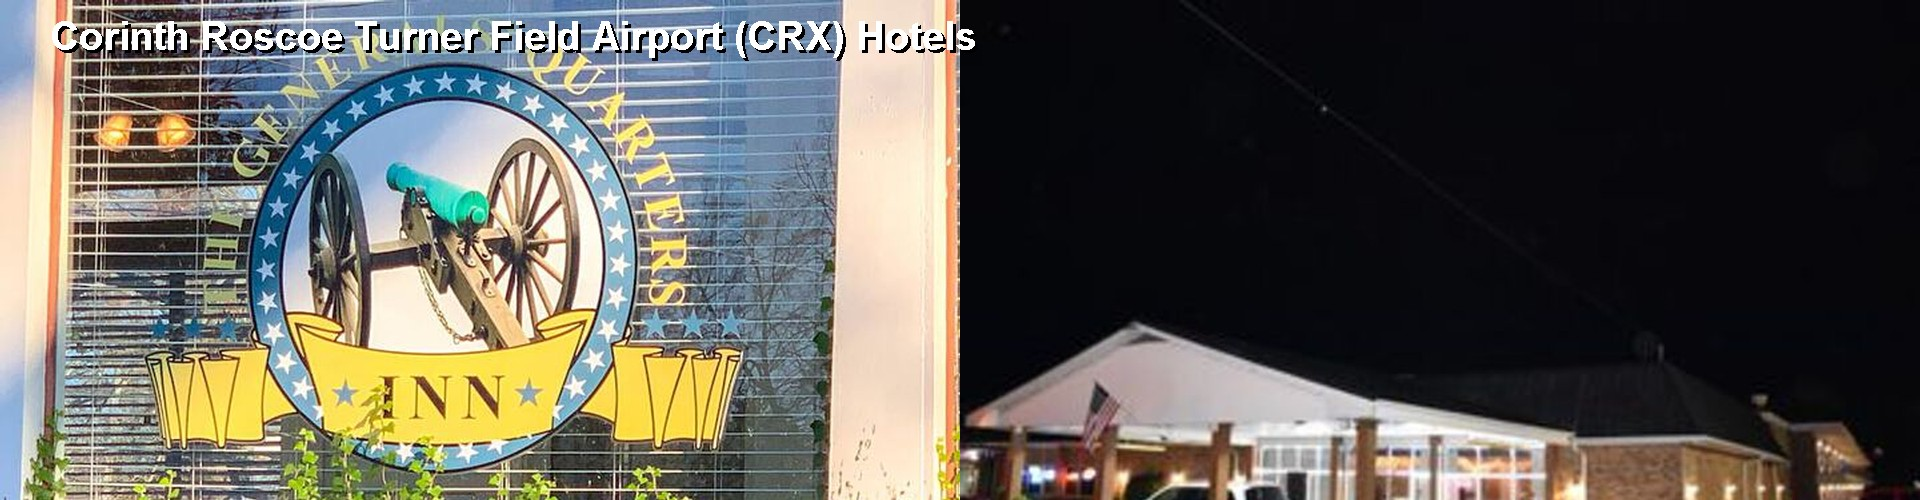 5 Best Hotels Near Corinth Roscoe Turner Field Airport Crx